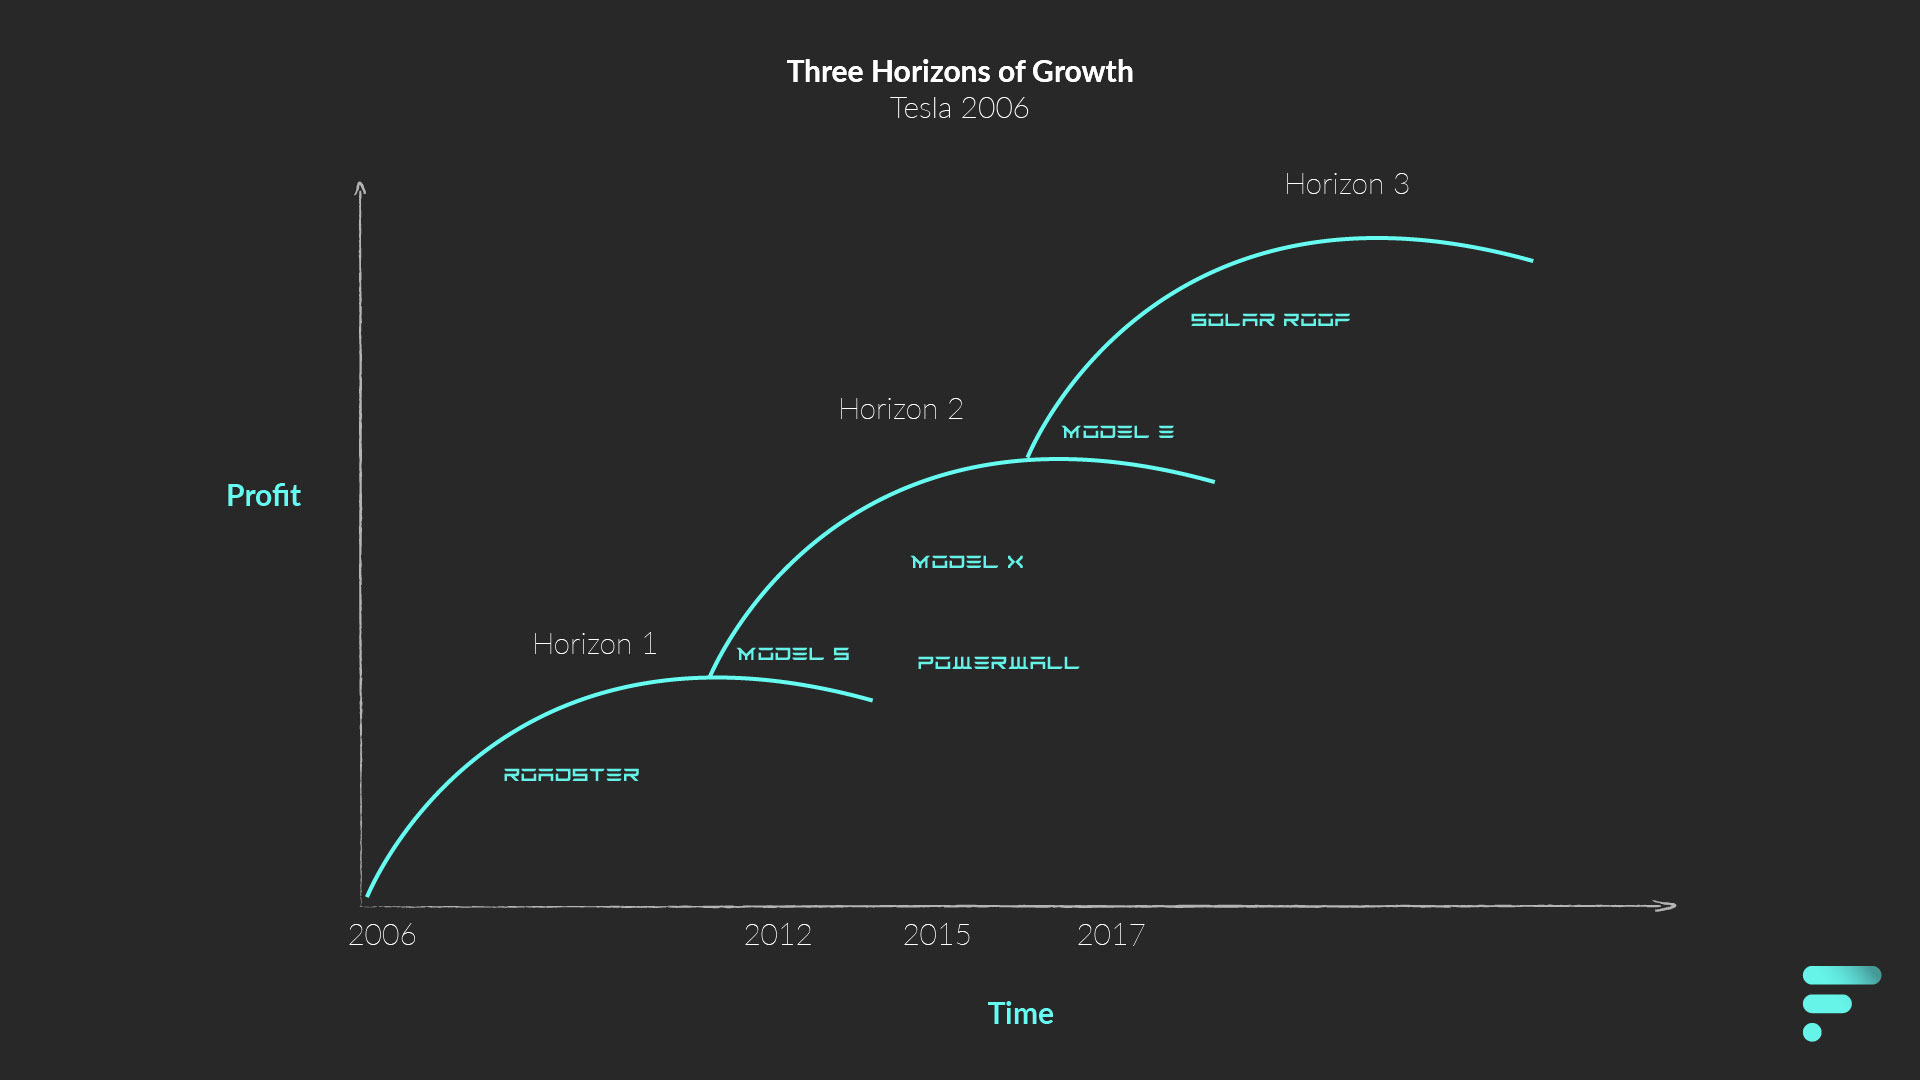 Three Horizons of Growth - Tesla in 2006